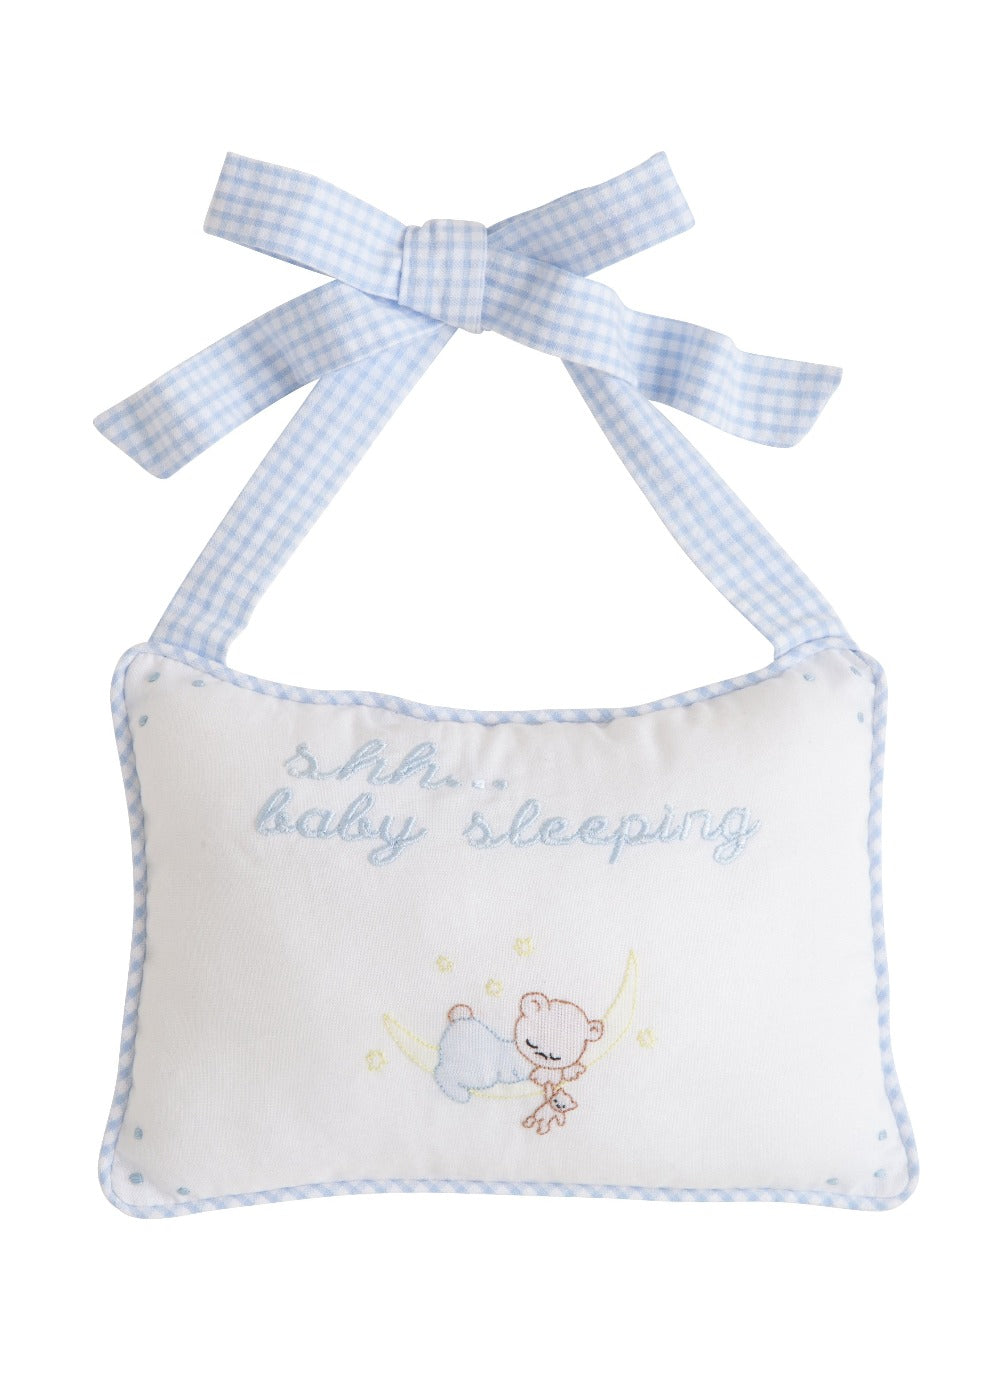 Door Pillow - Baby Boy, Little English, classic children's clothing, preppy children's clothing, traditional children's clothing, classic baby clothing, traditional baby clothing